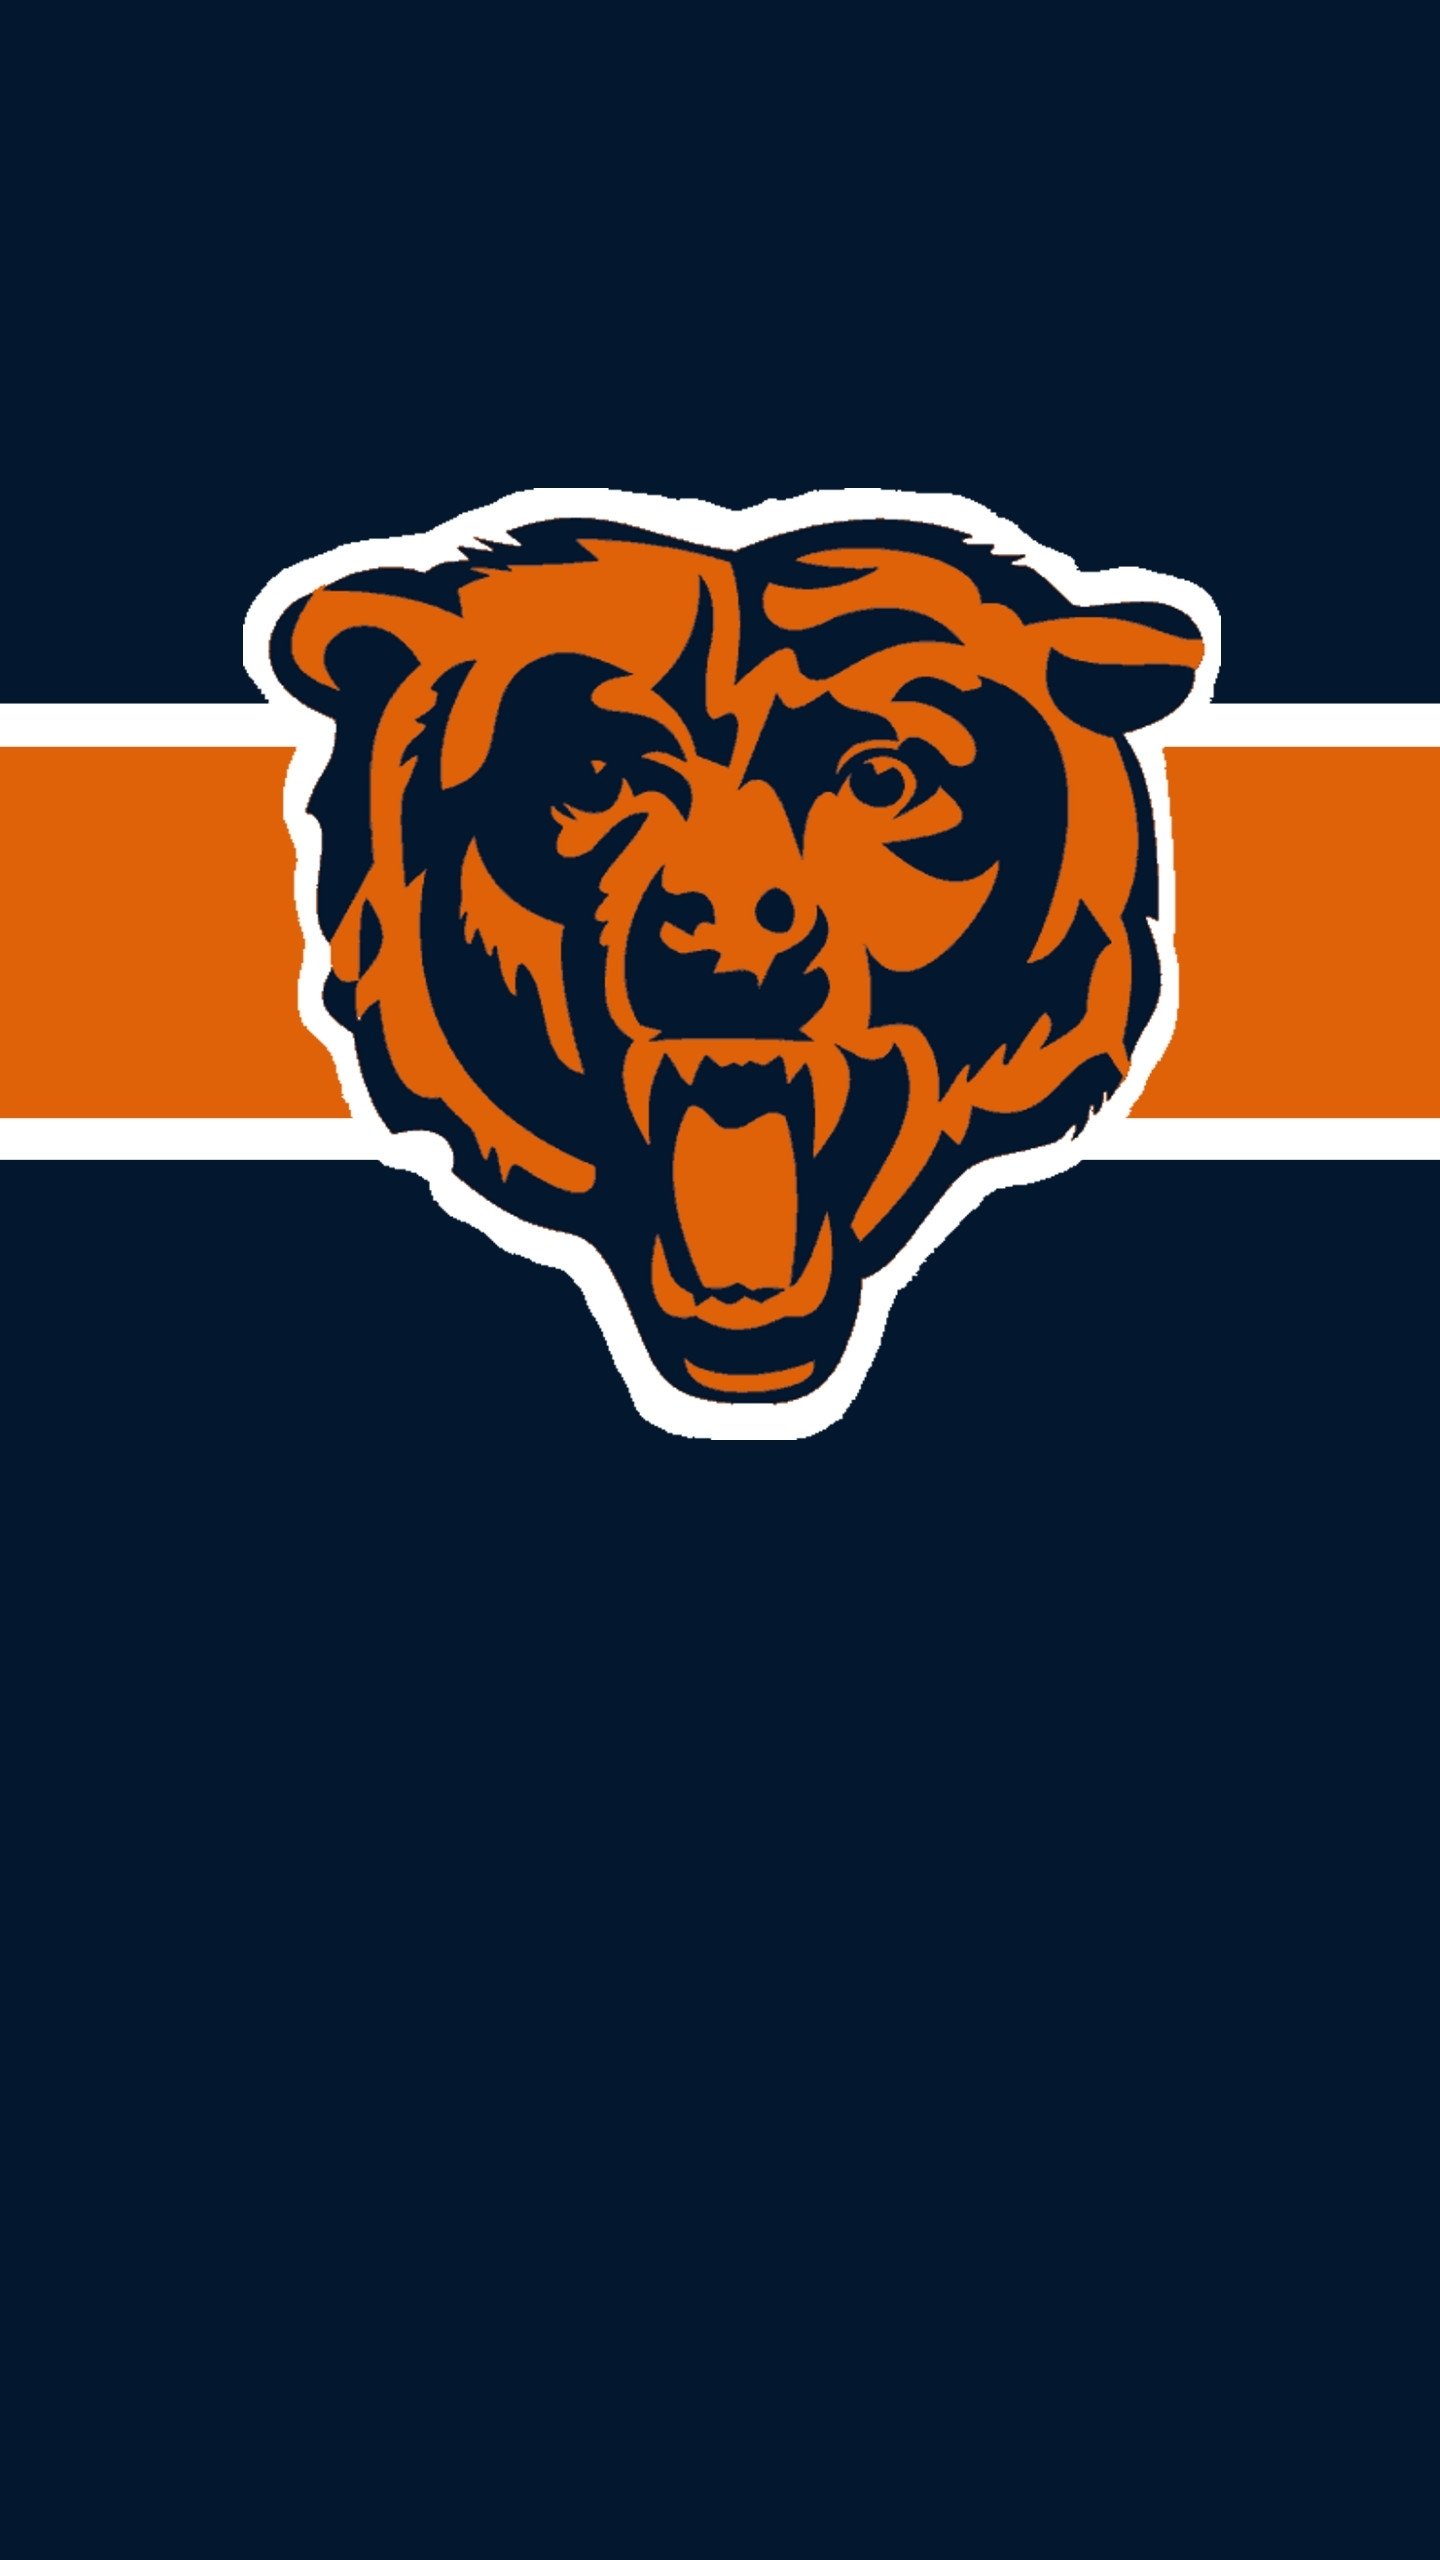 chicago bears iphone wallpaper (77+ images)